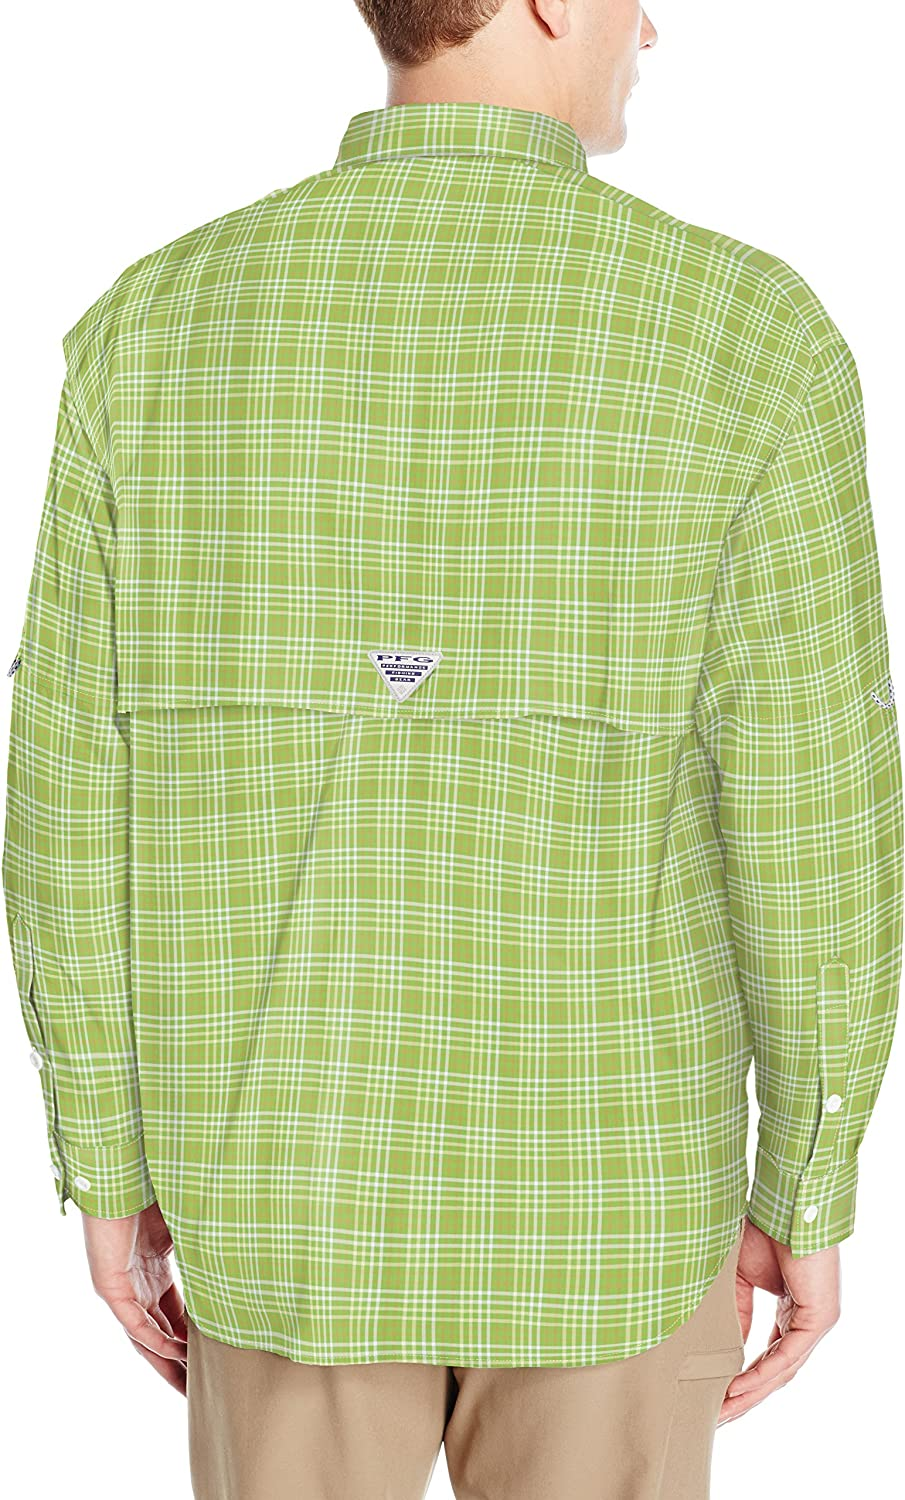 Columbia Men's Super Bahama Long Sleeve Shirt Spring Multi Plaid